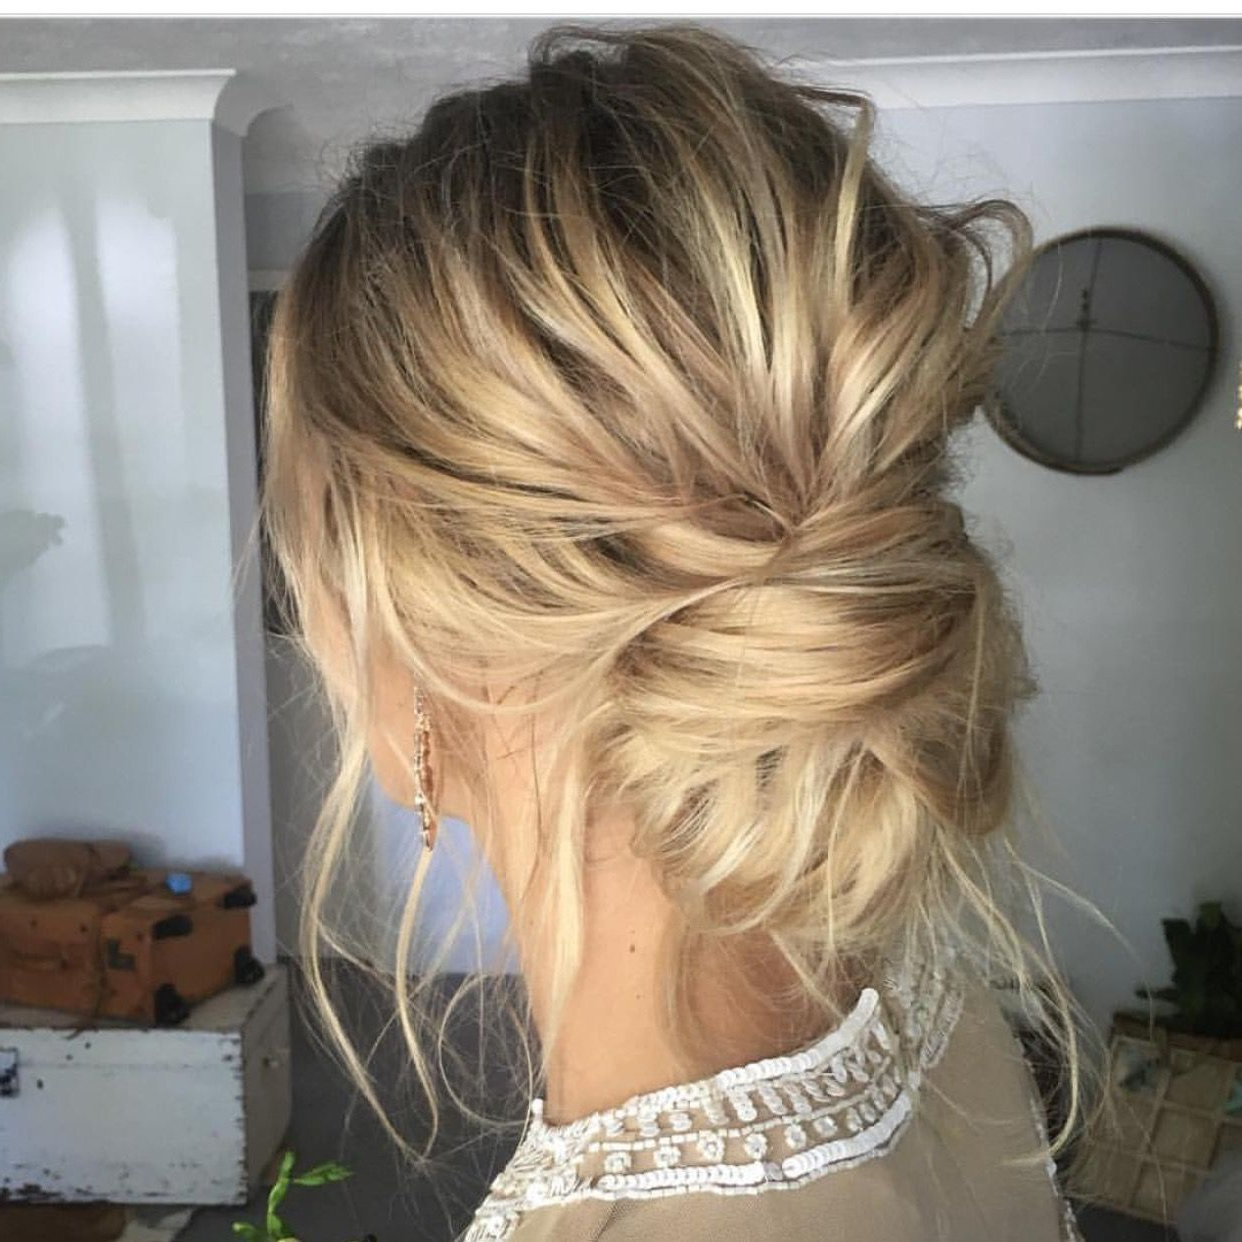 Widely Used Low Messy Bun Wedding Hairstyles For Fine Hair For Pinhair And Beauty Catalog On Short Hairstyles (View 12 of 20)